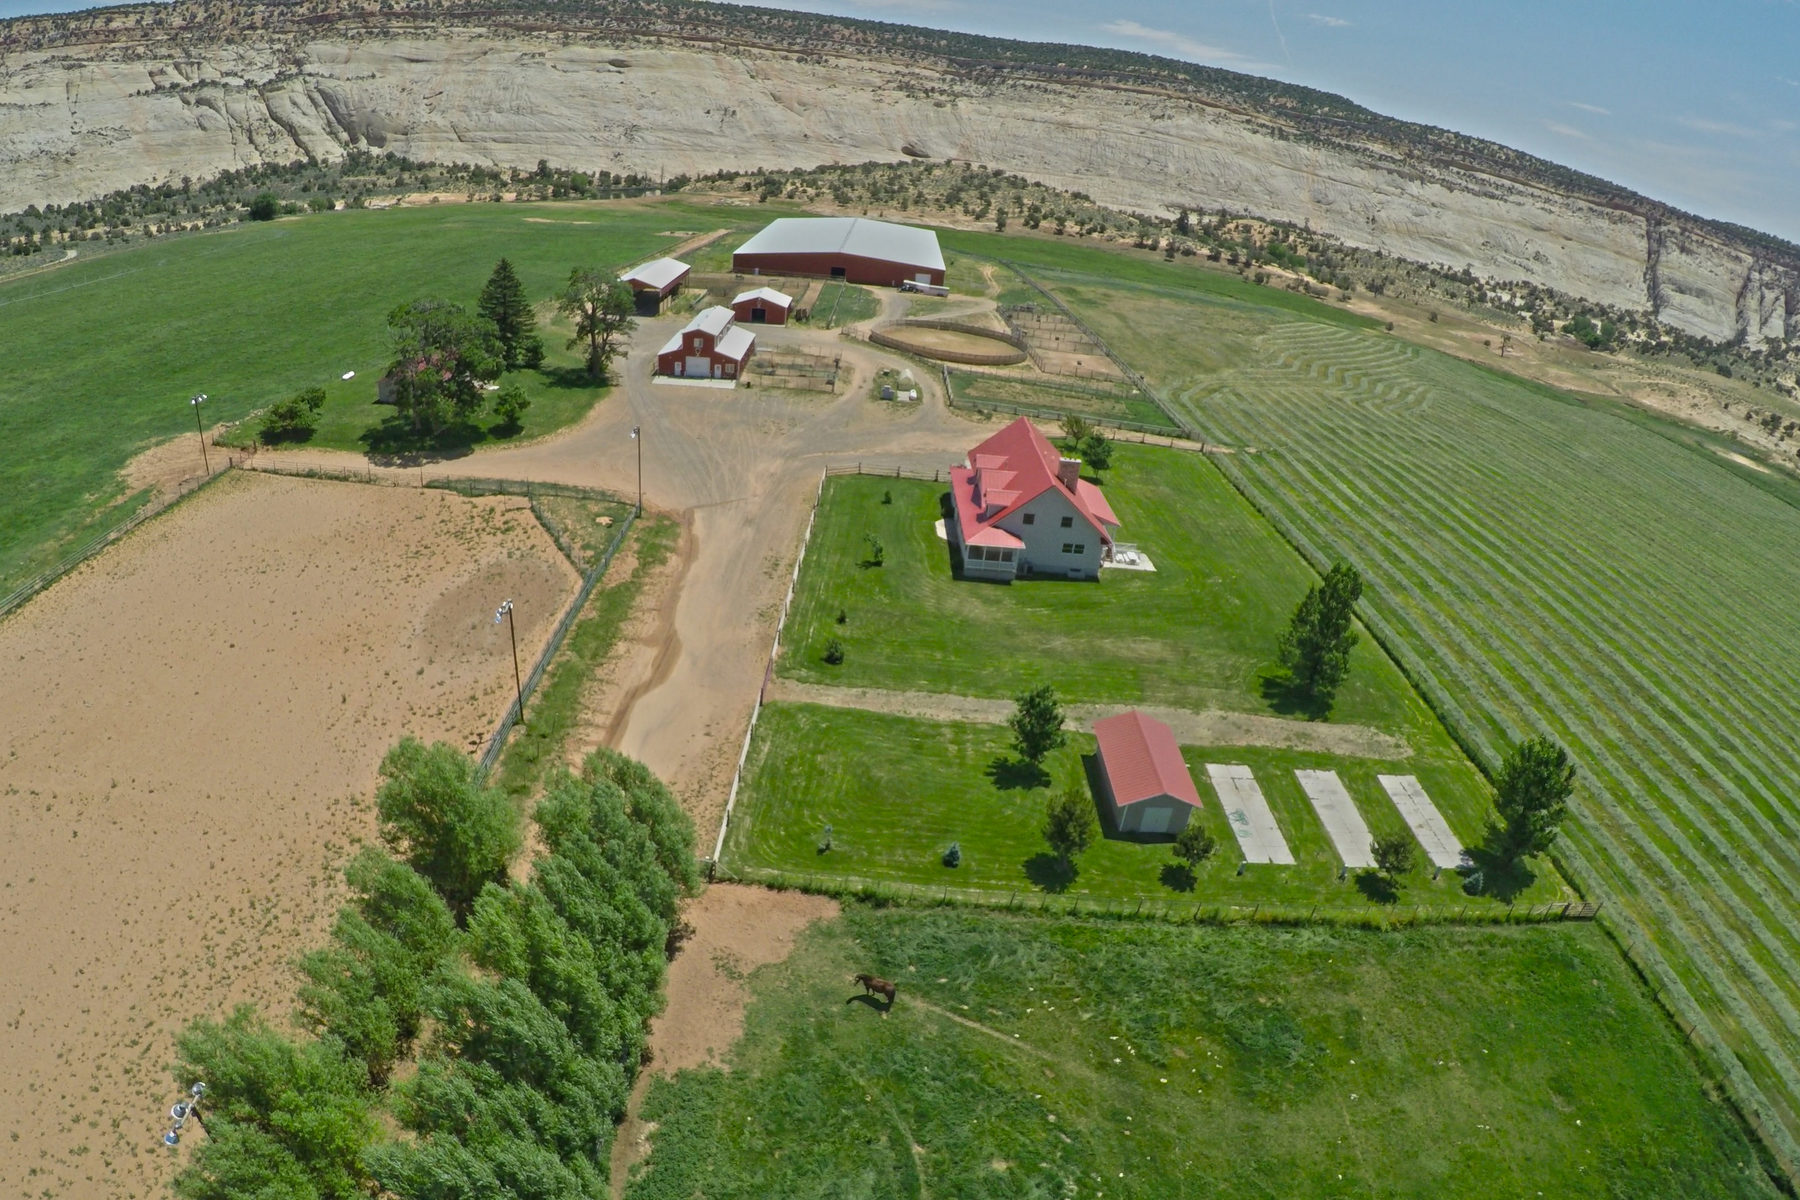 农场 / 牧场 / 种植园 为 销售 在 An Intensely Private & Deeply Inspirational One of a Kind Ranch - Land Holding 2405 Lower Boulder Rd 博尔德, 犹他州 84716 美国